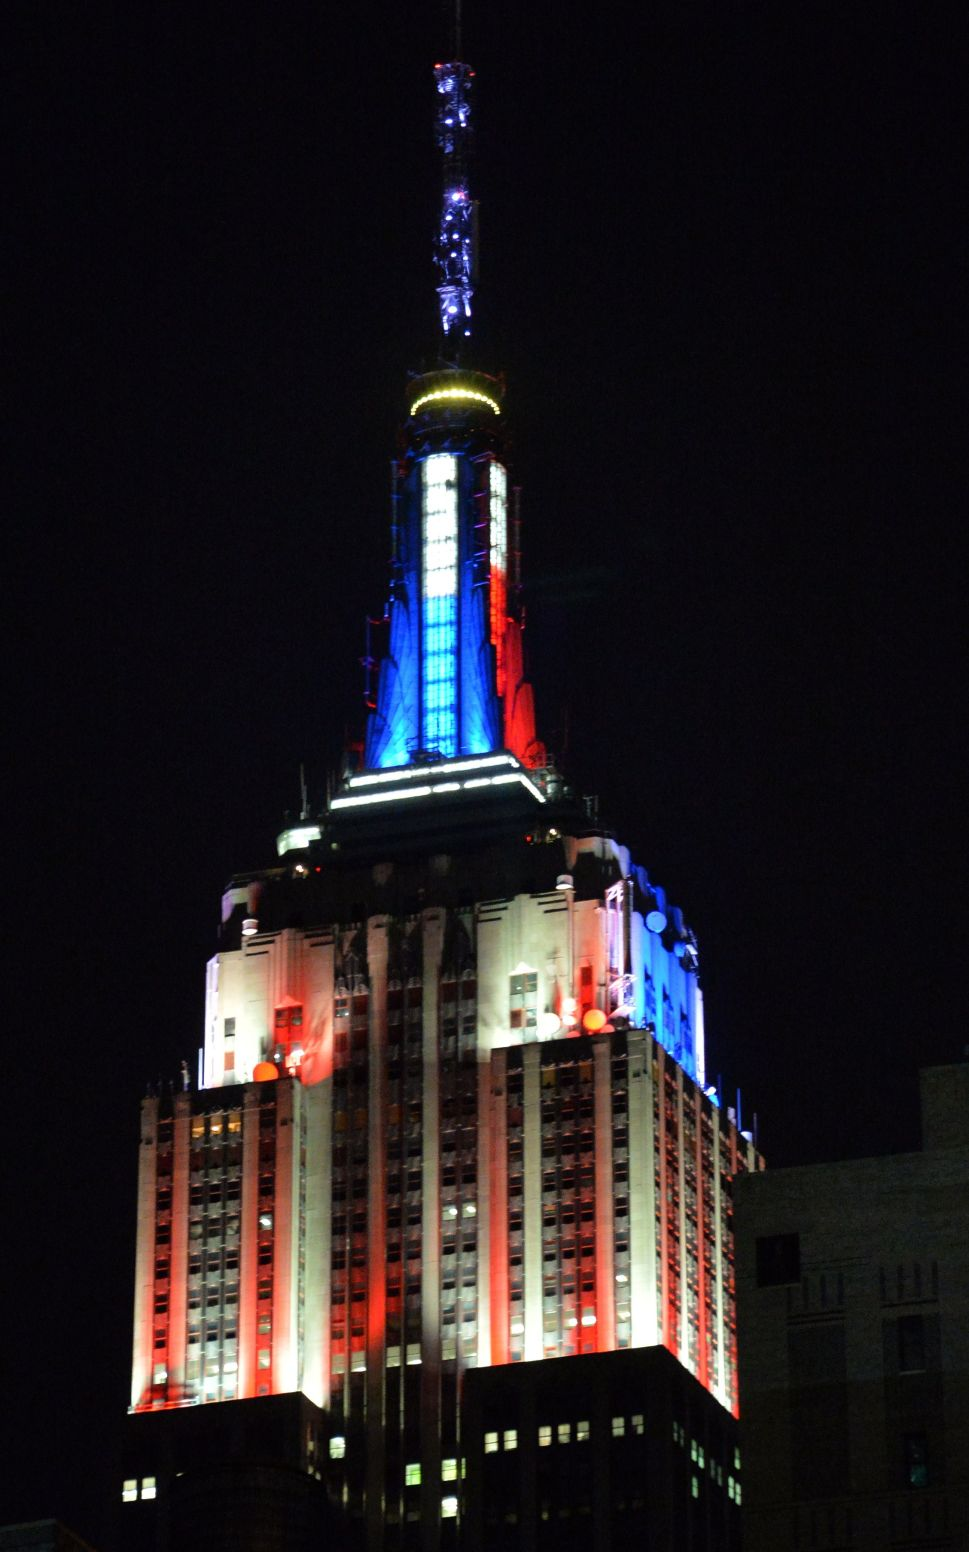 The Empire State Building Will Light Up May 1 to Celebrate the New Whitney Museum